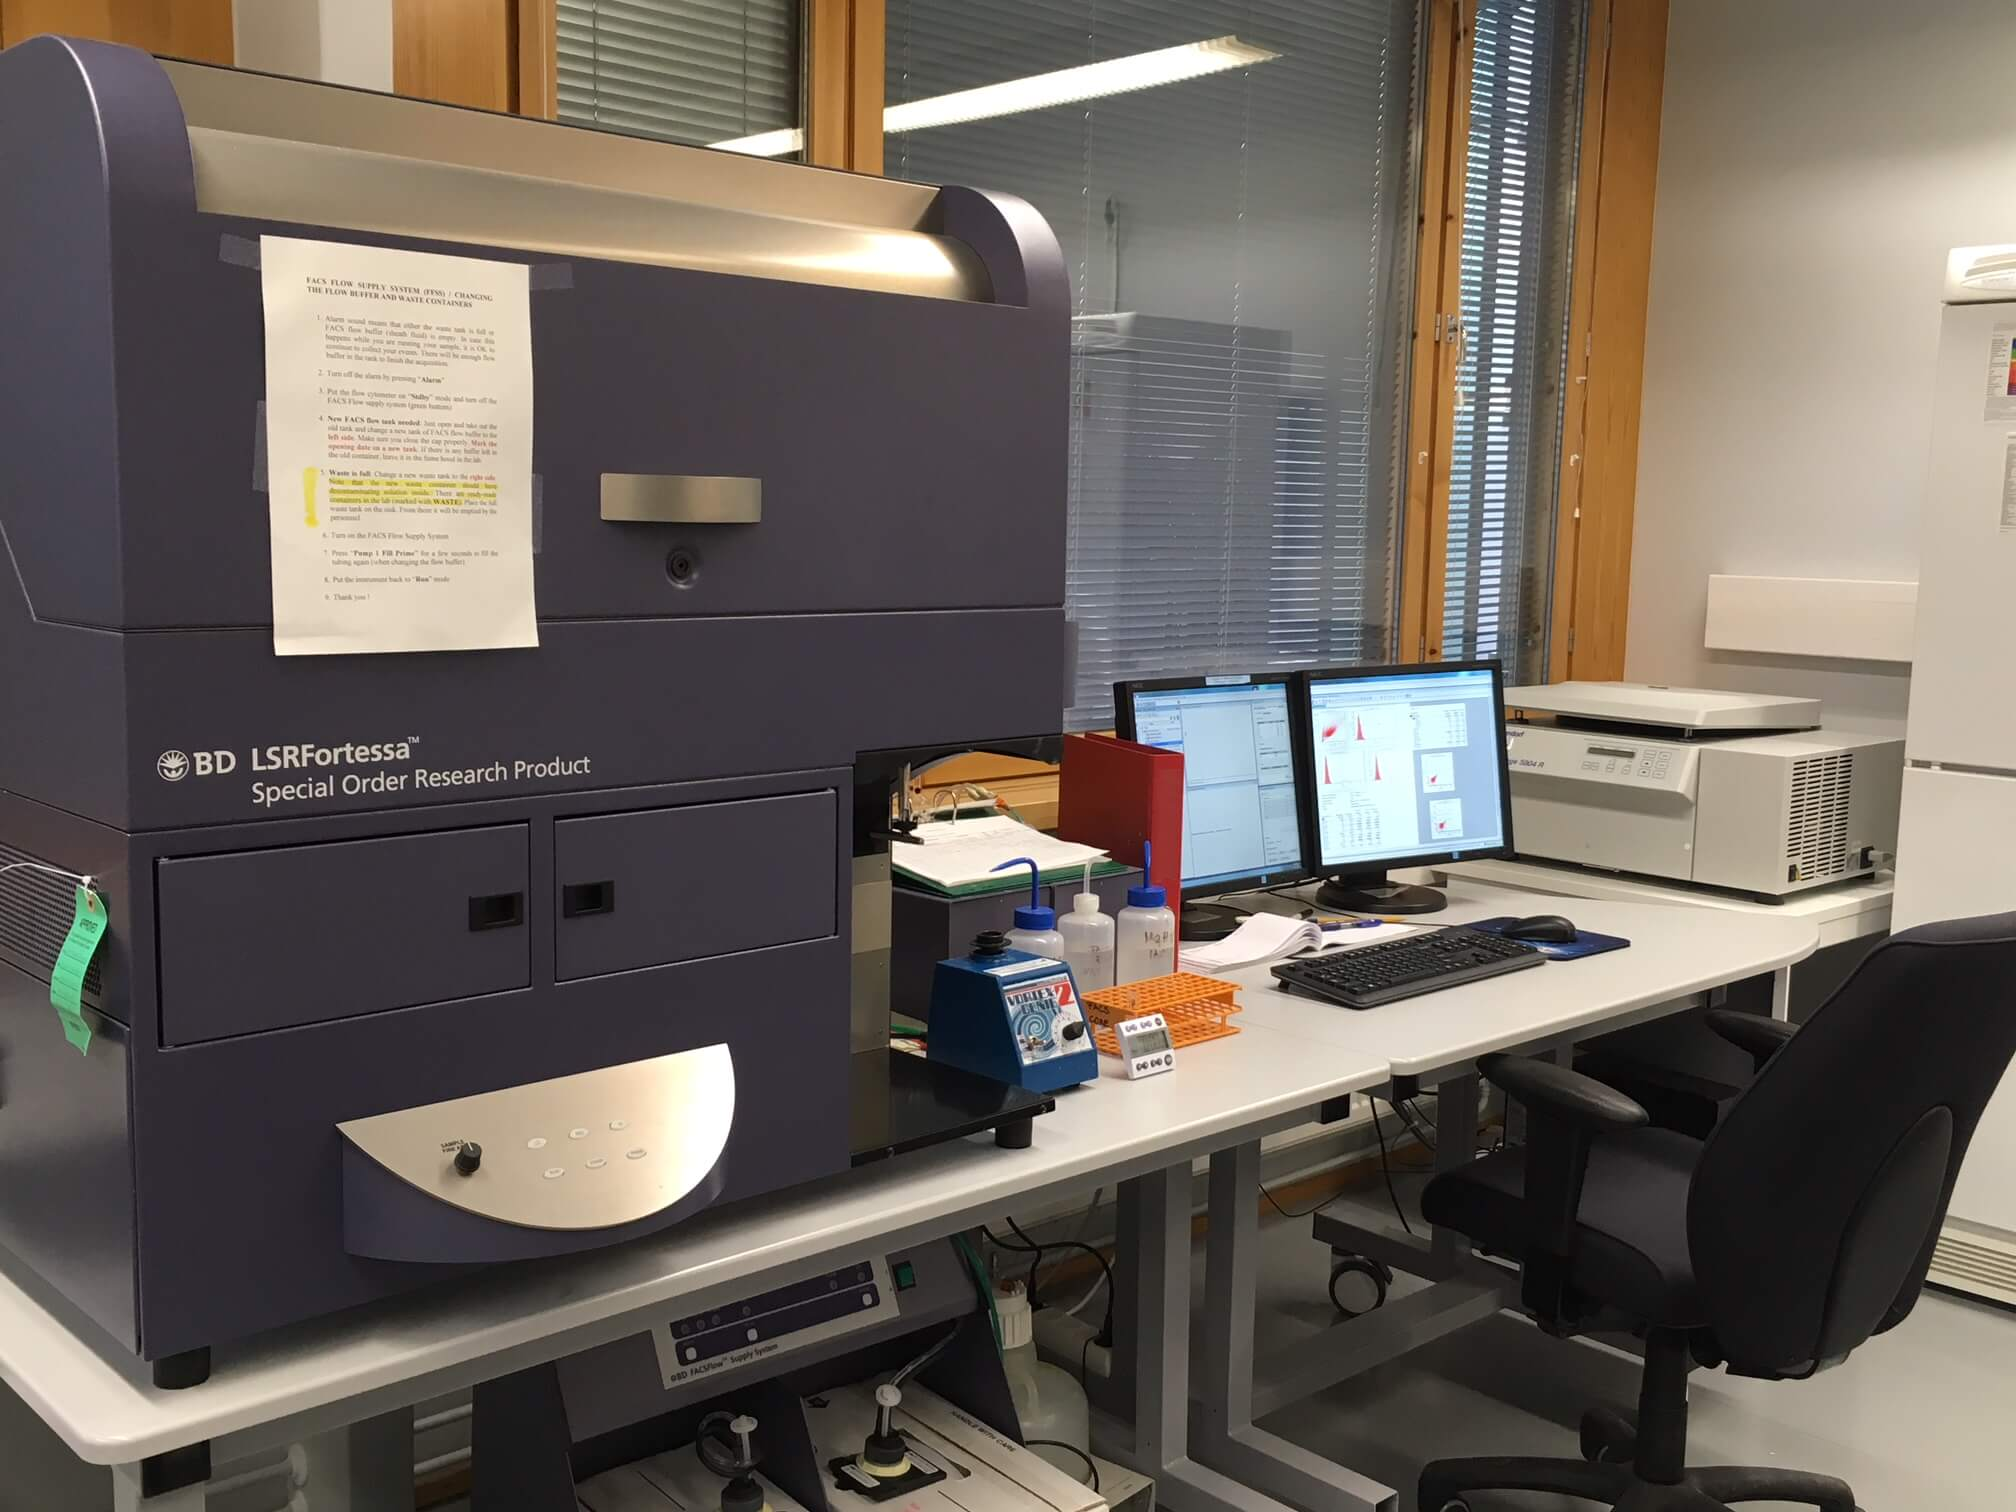 BD LSR Fortessa analyser in Biocenter Flow Cytometry. Photo by Maria Aatonen